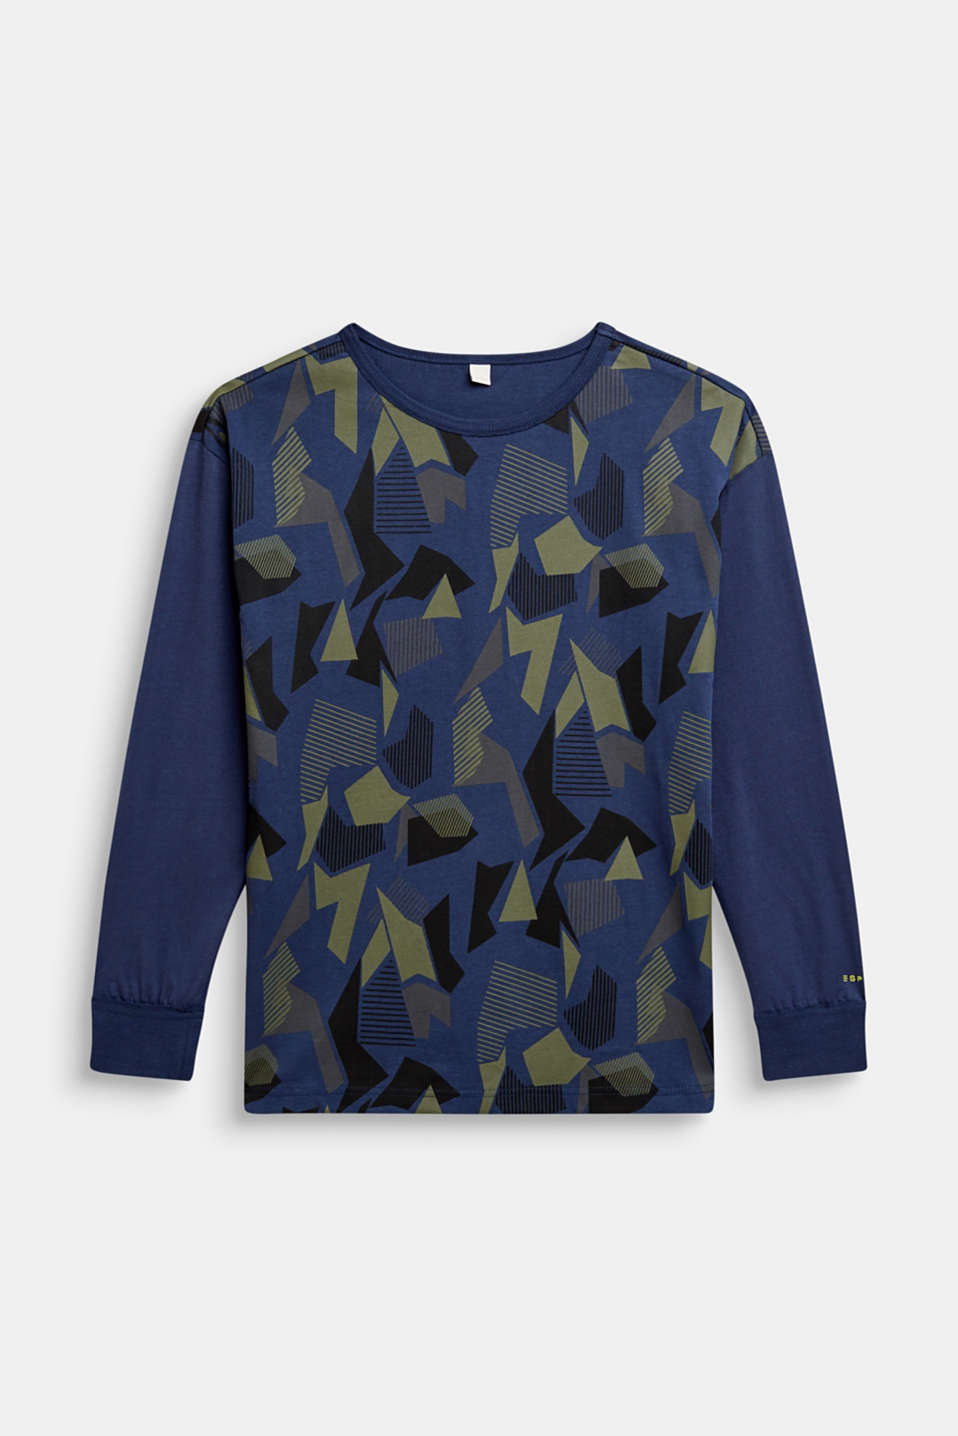 Esprit - Long sleeve top with a graphic print, 100% cotton